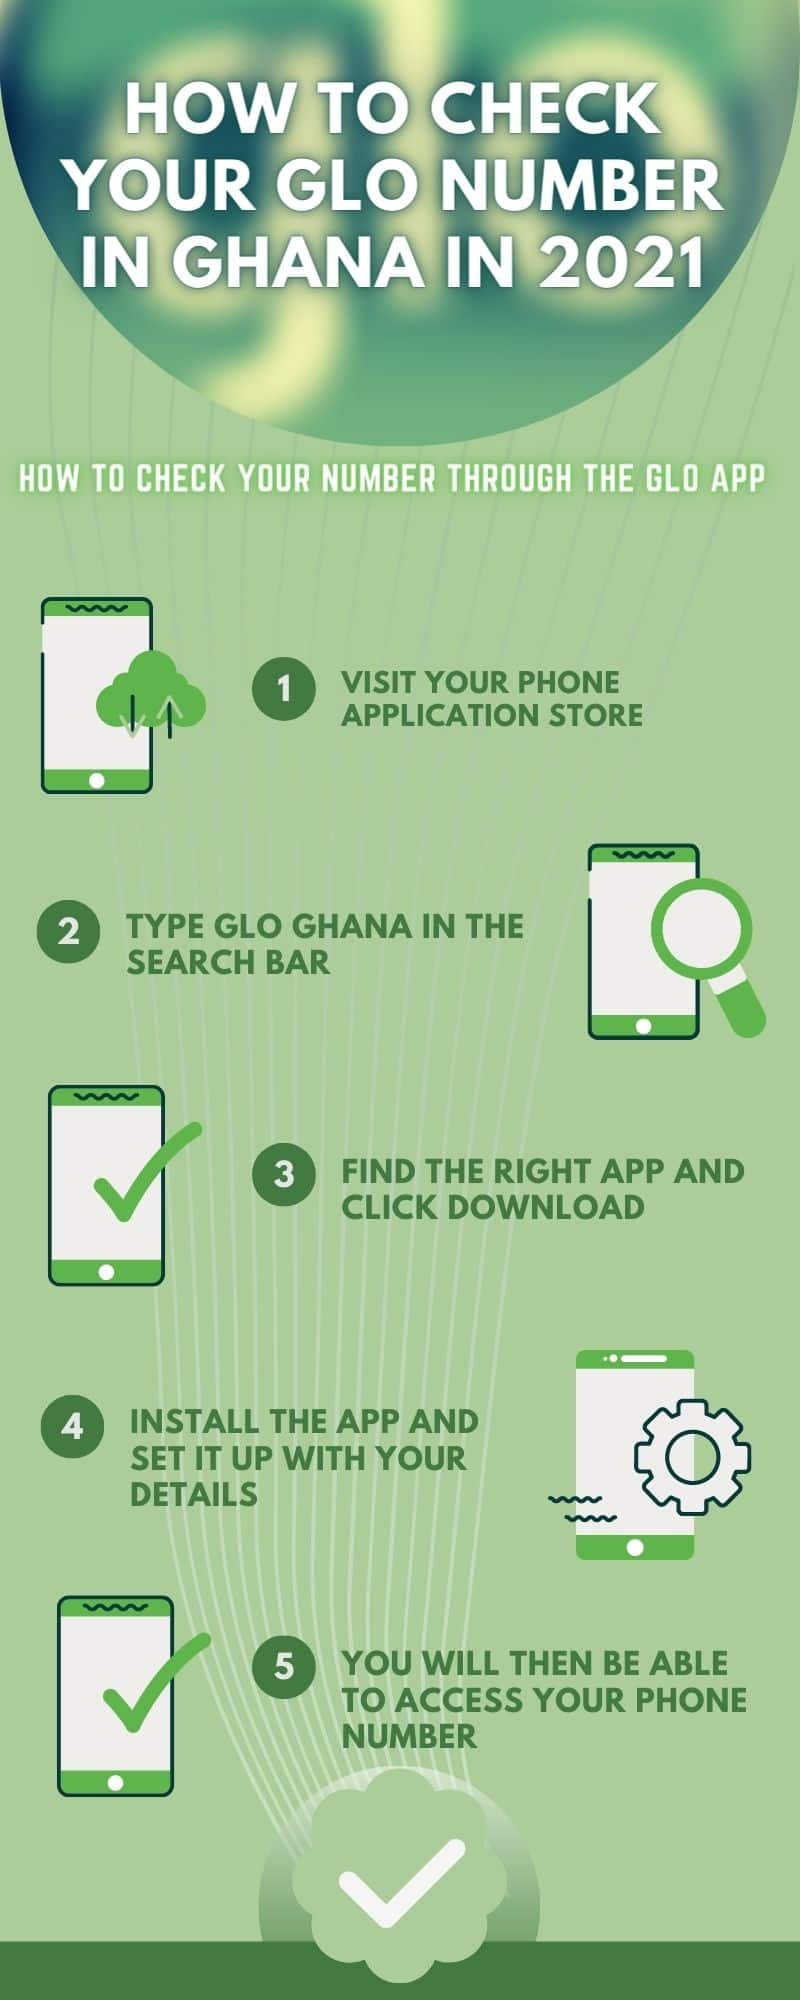 How to check your Glo number